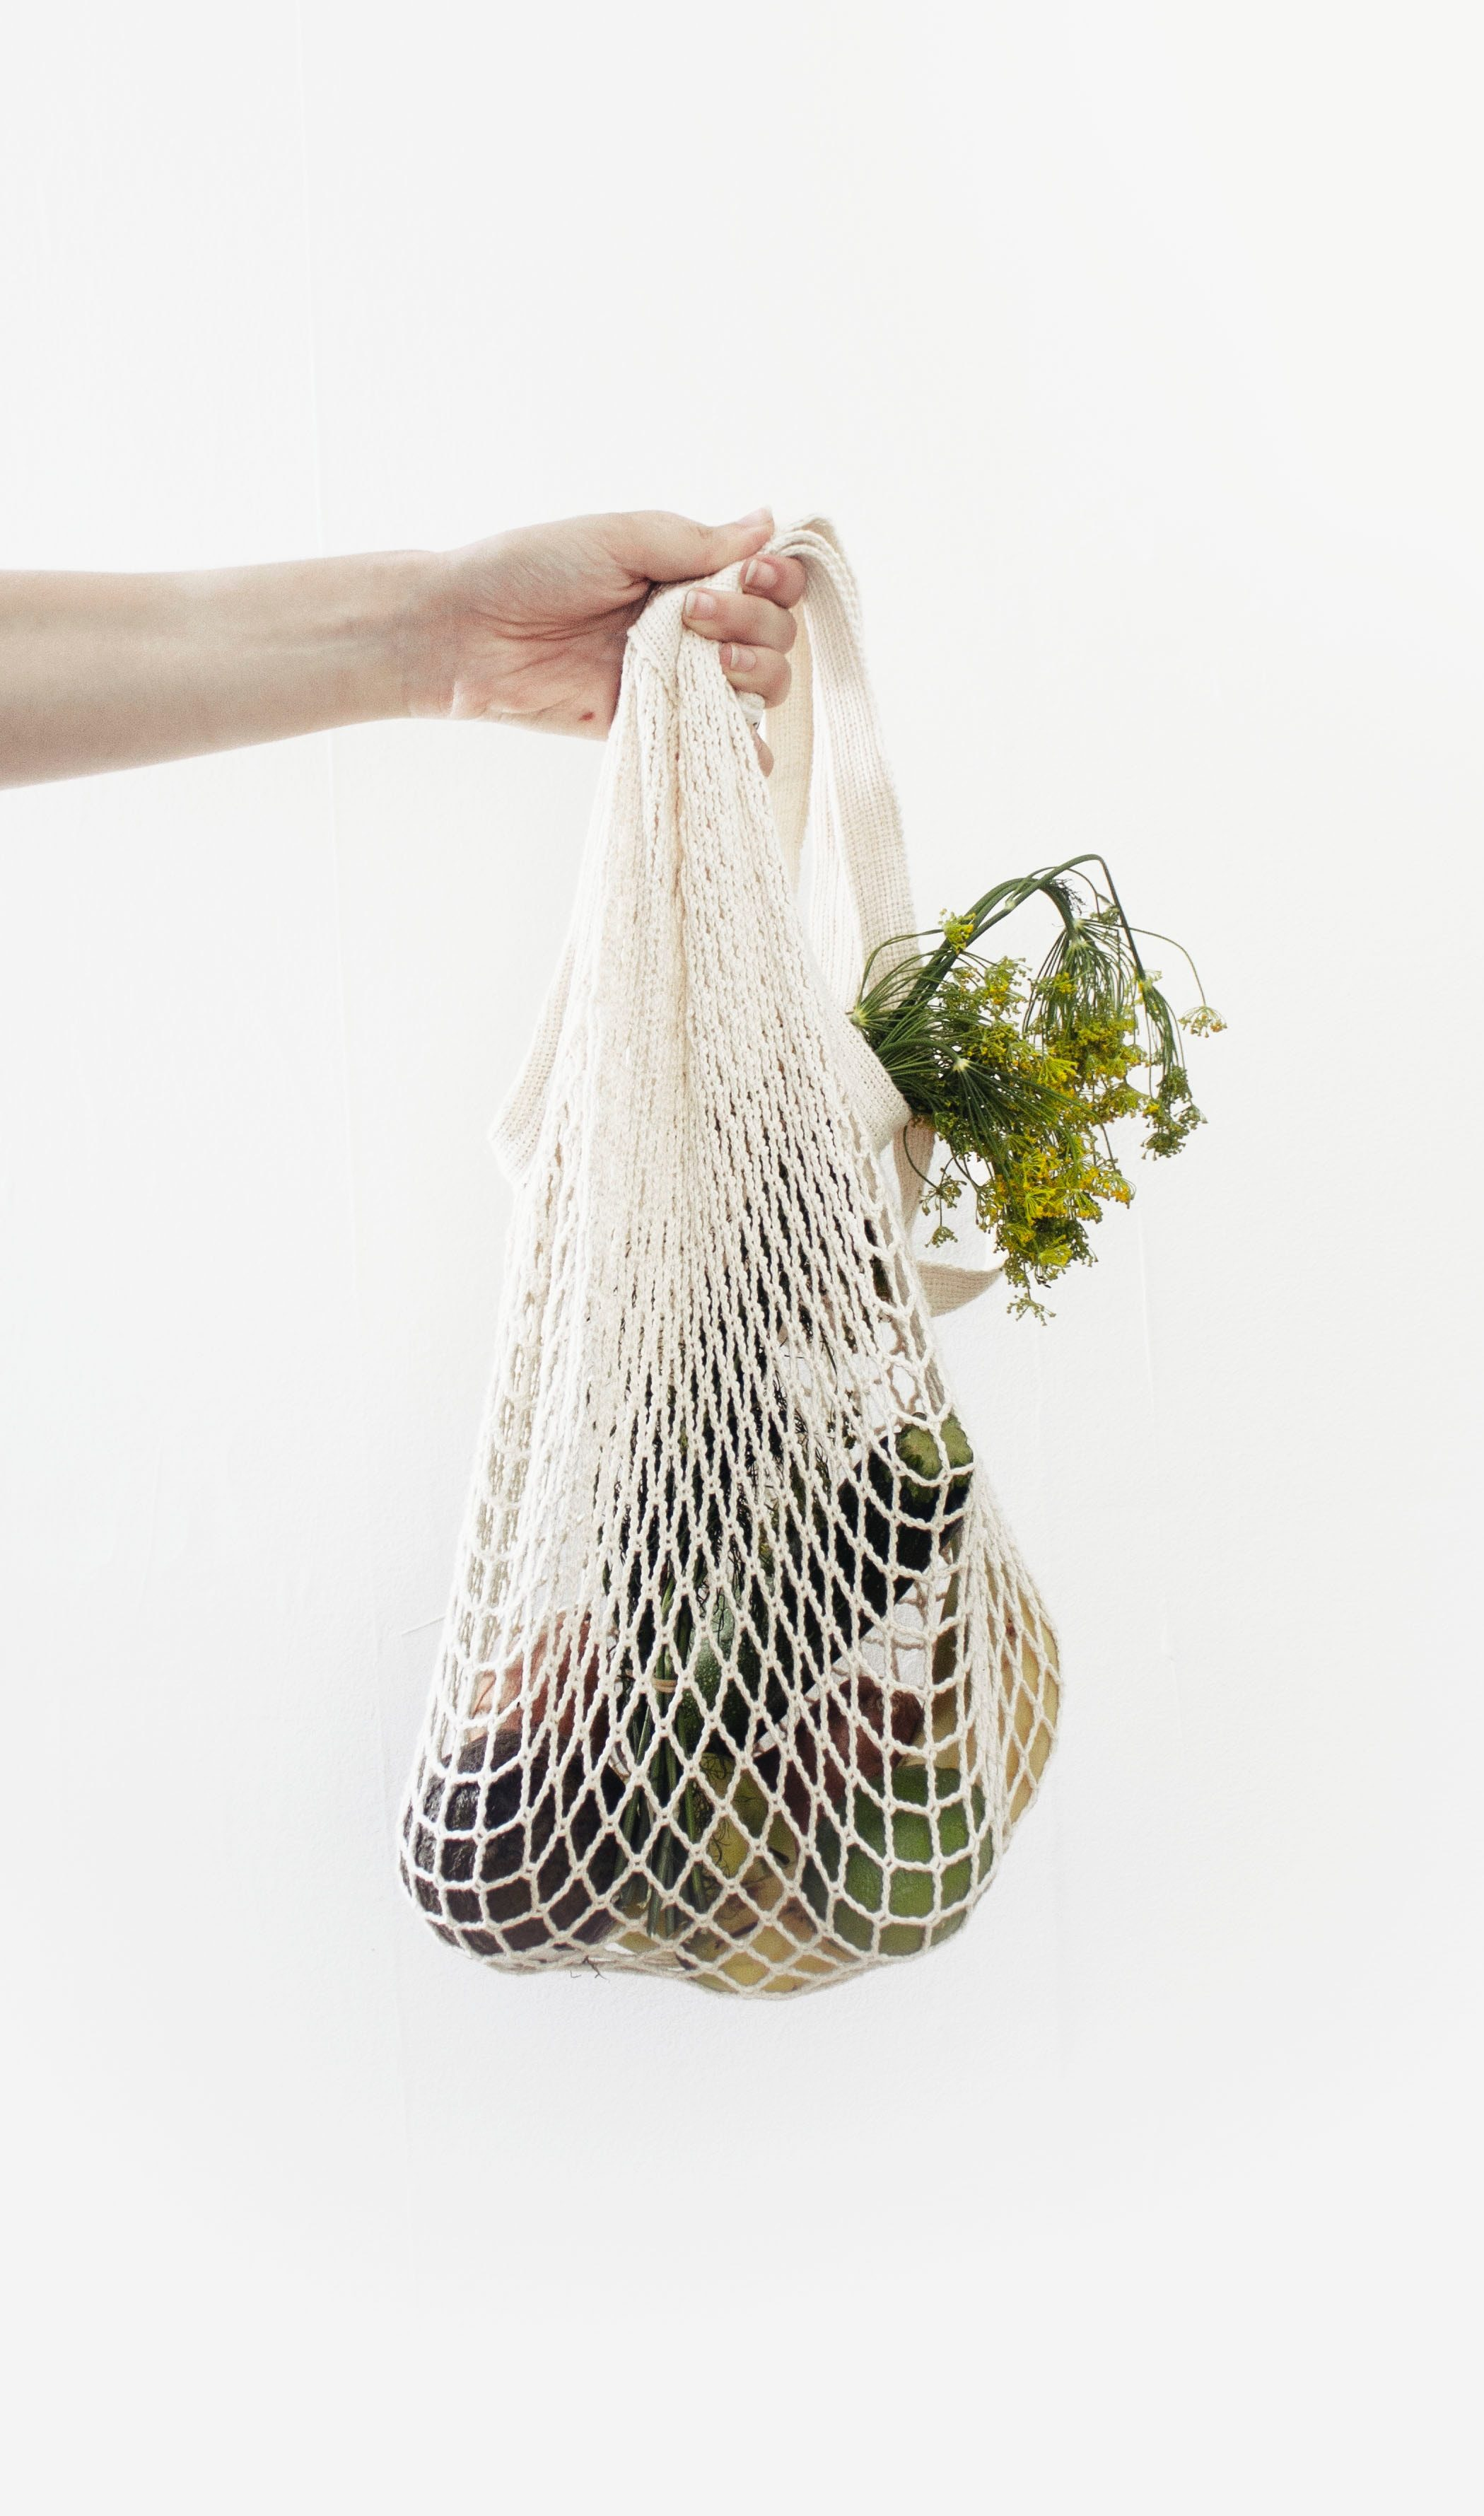 someone-holding-a-reusable-bag-with-